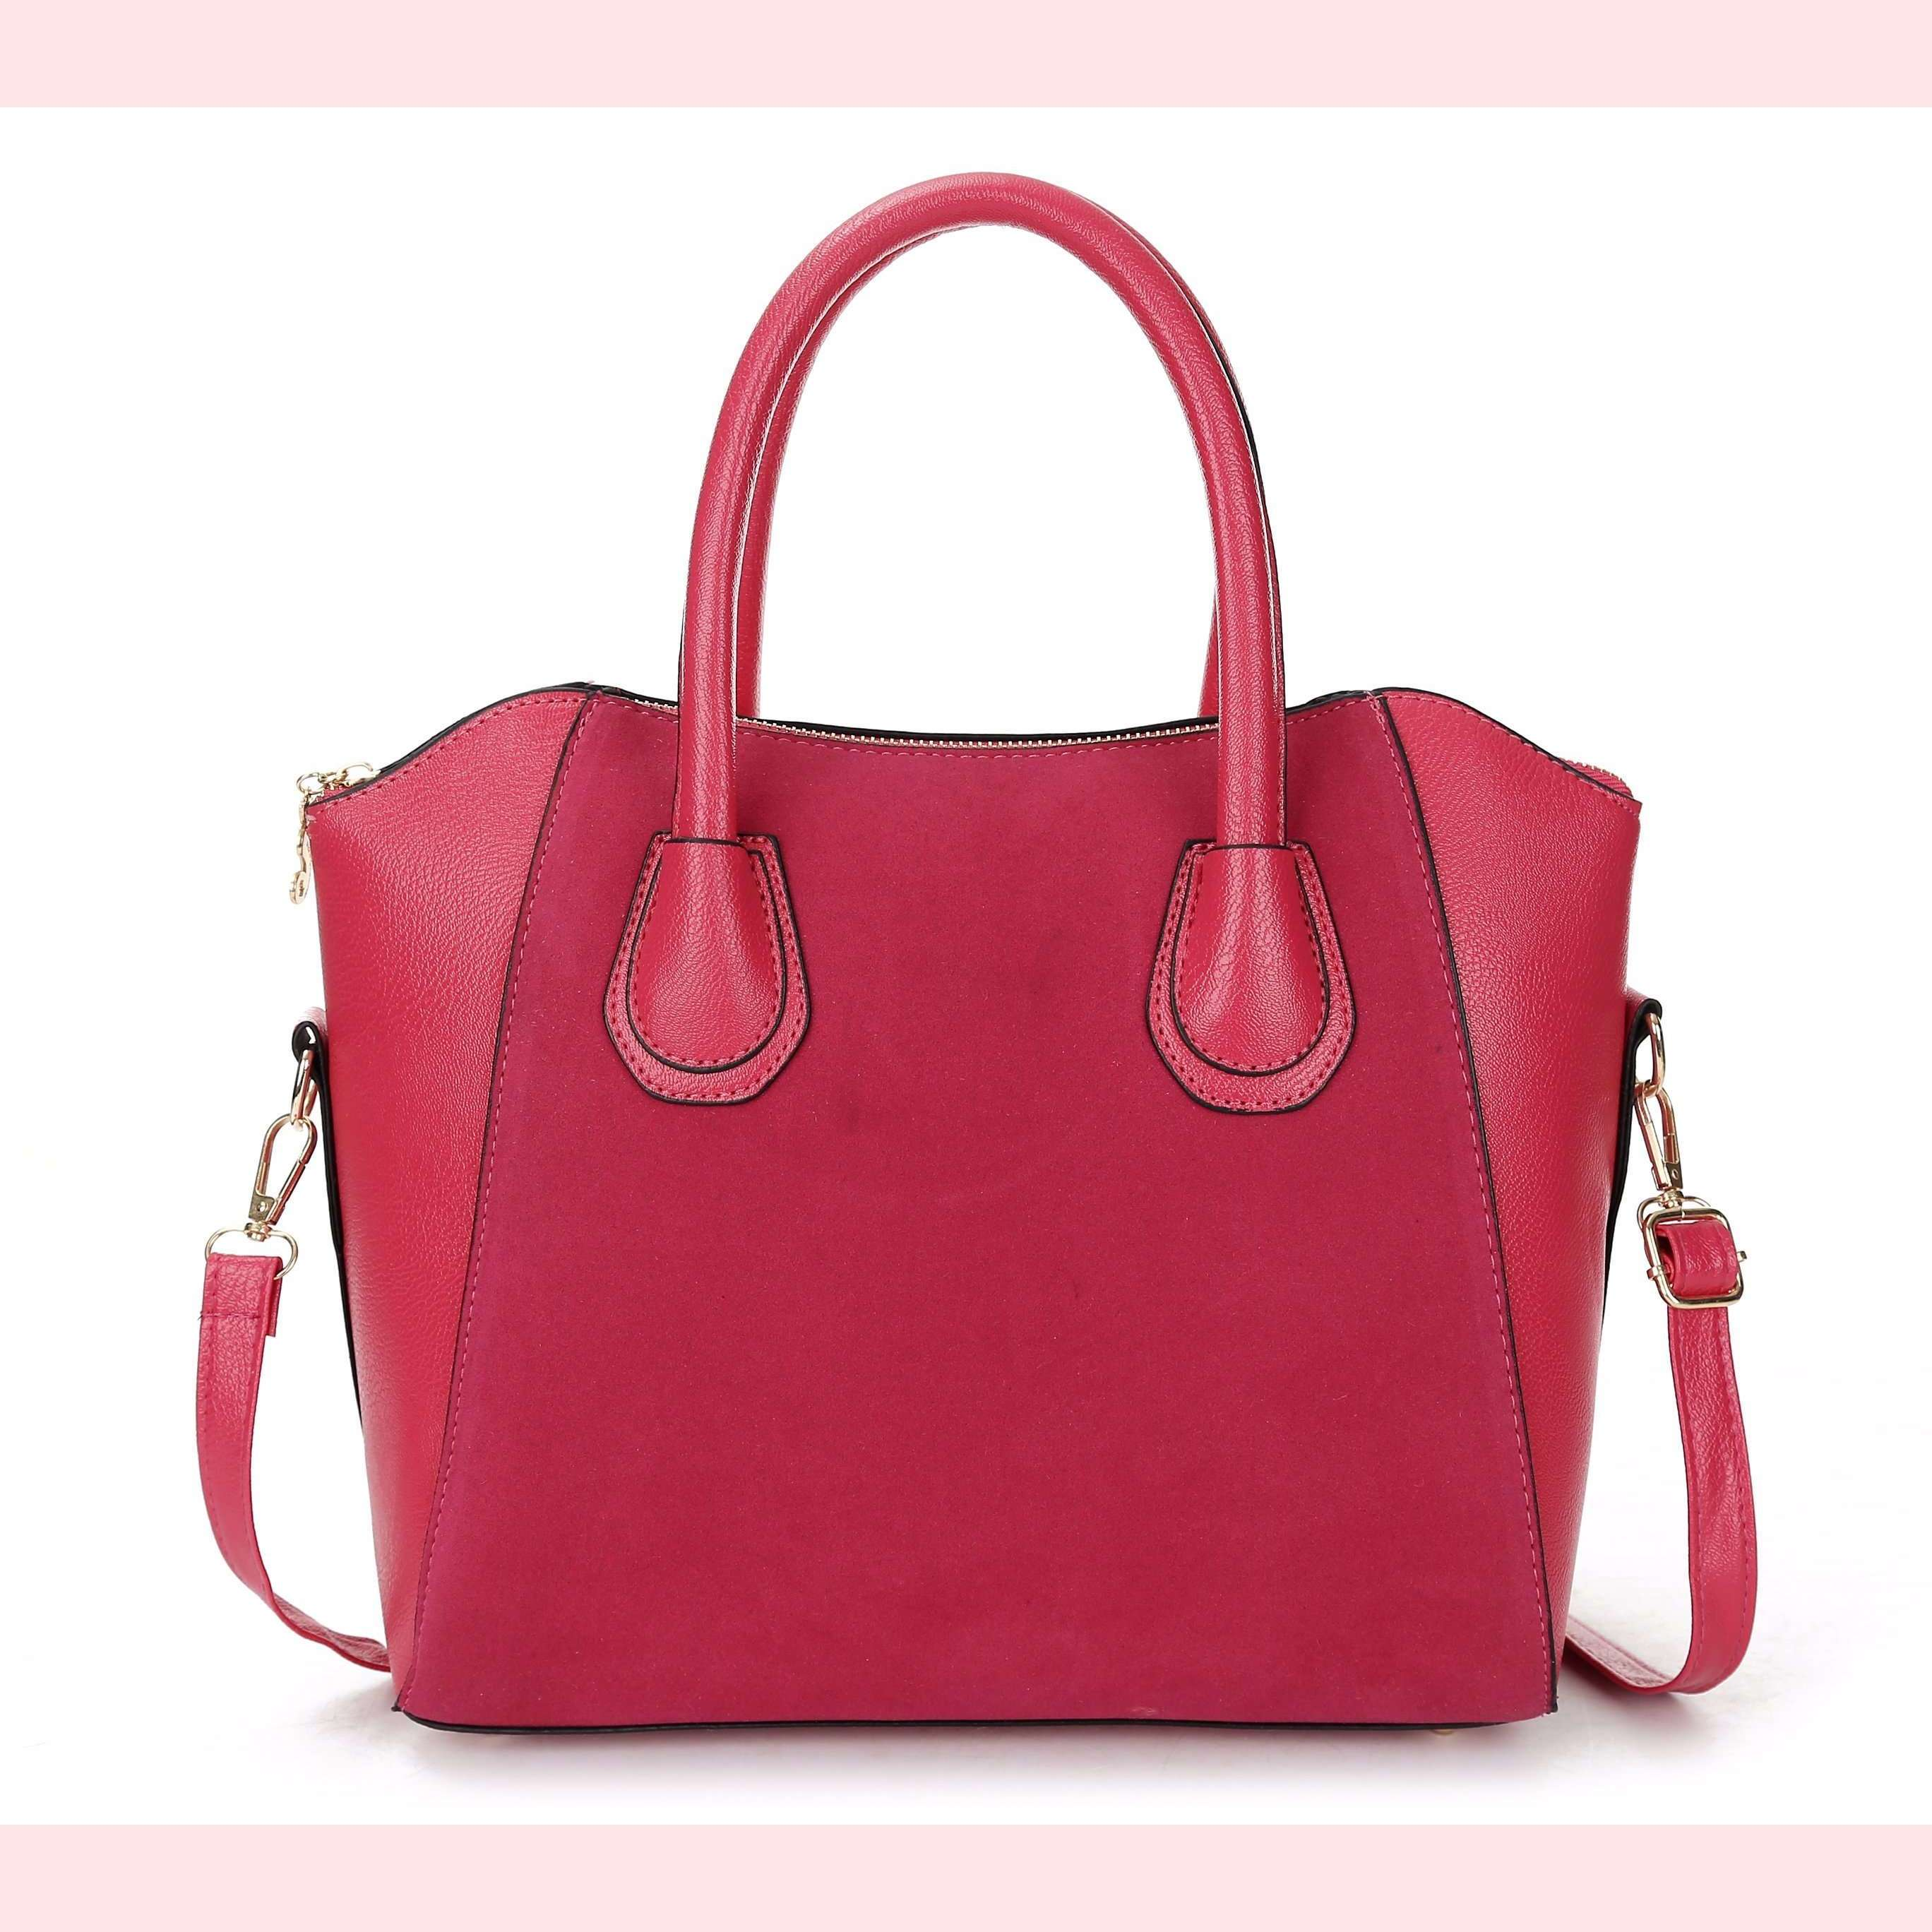 Angela Faux Leather Handbag,Blissful Chic,Red